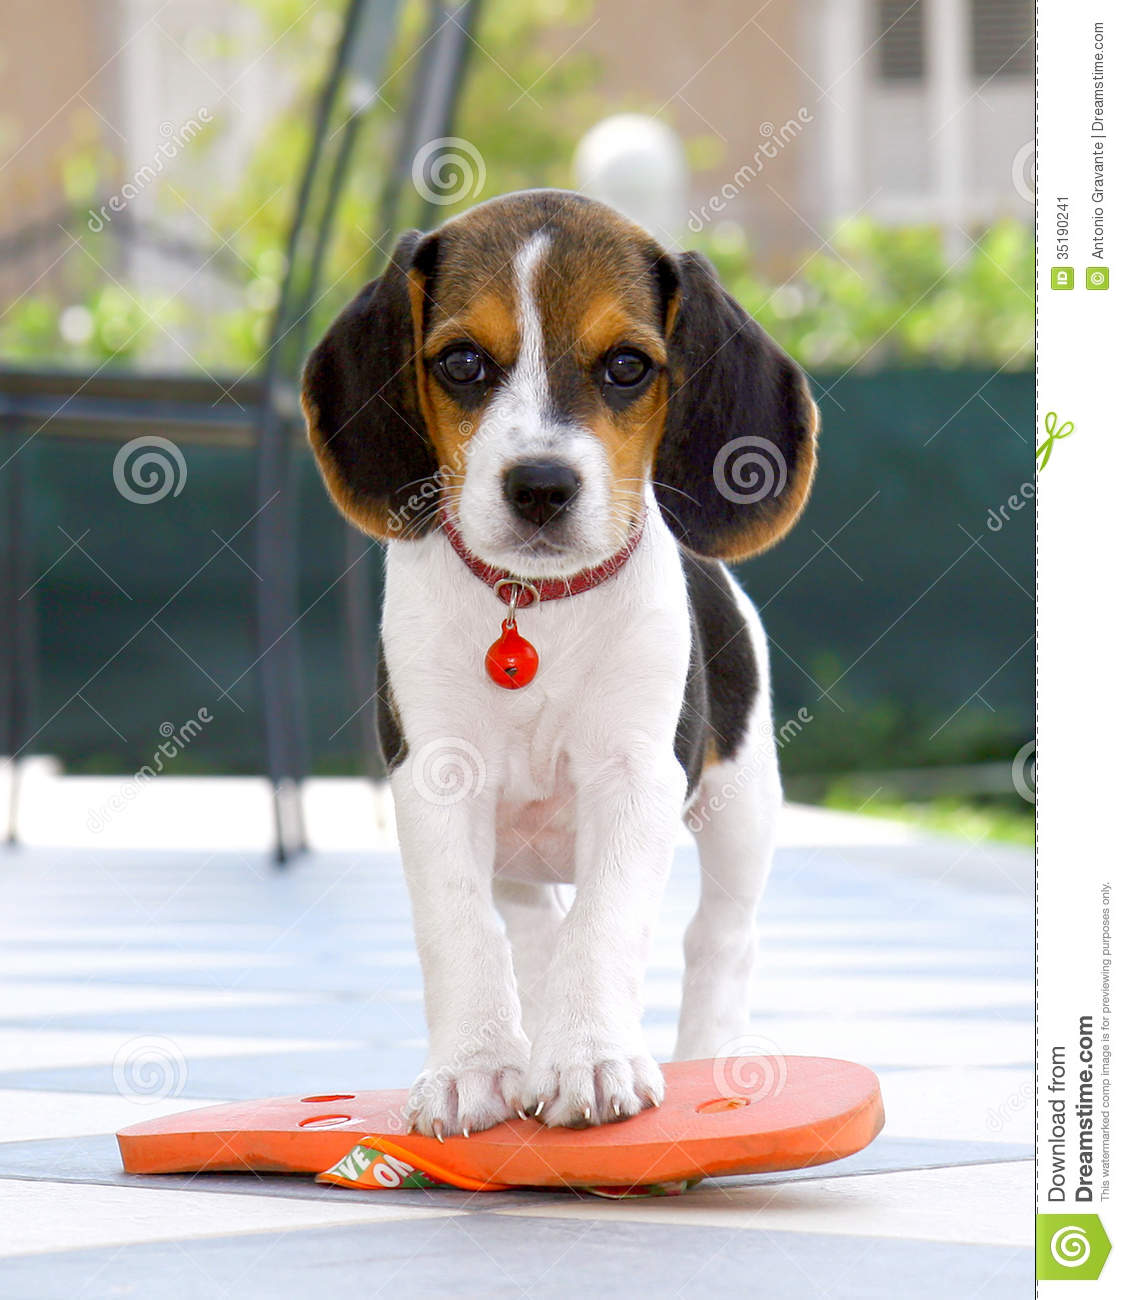 Cute beagle puppy stock image image of happy flooring 35190241 cute beagle puppy voltagebd Image collections